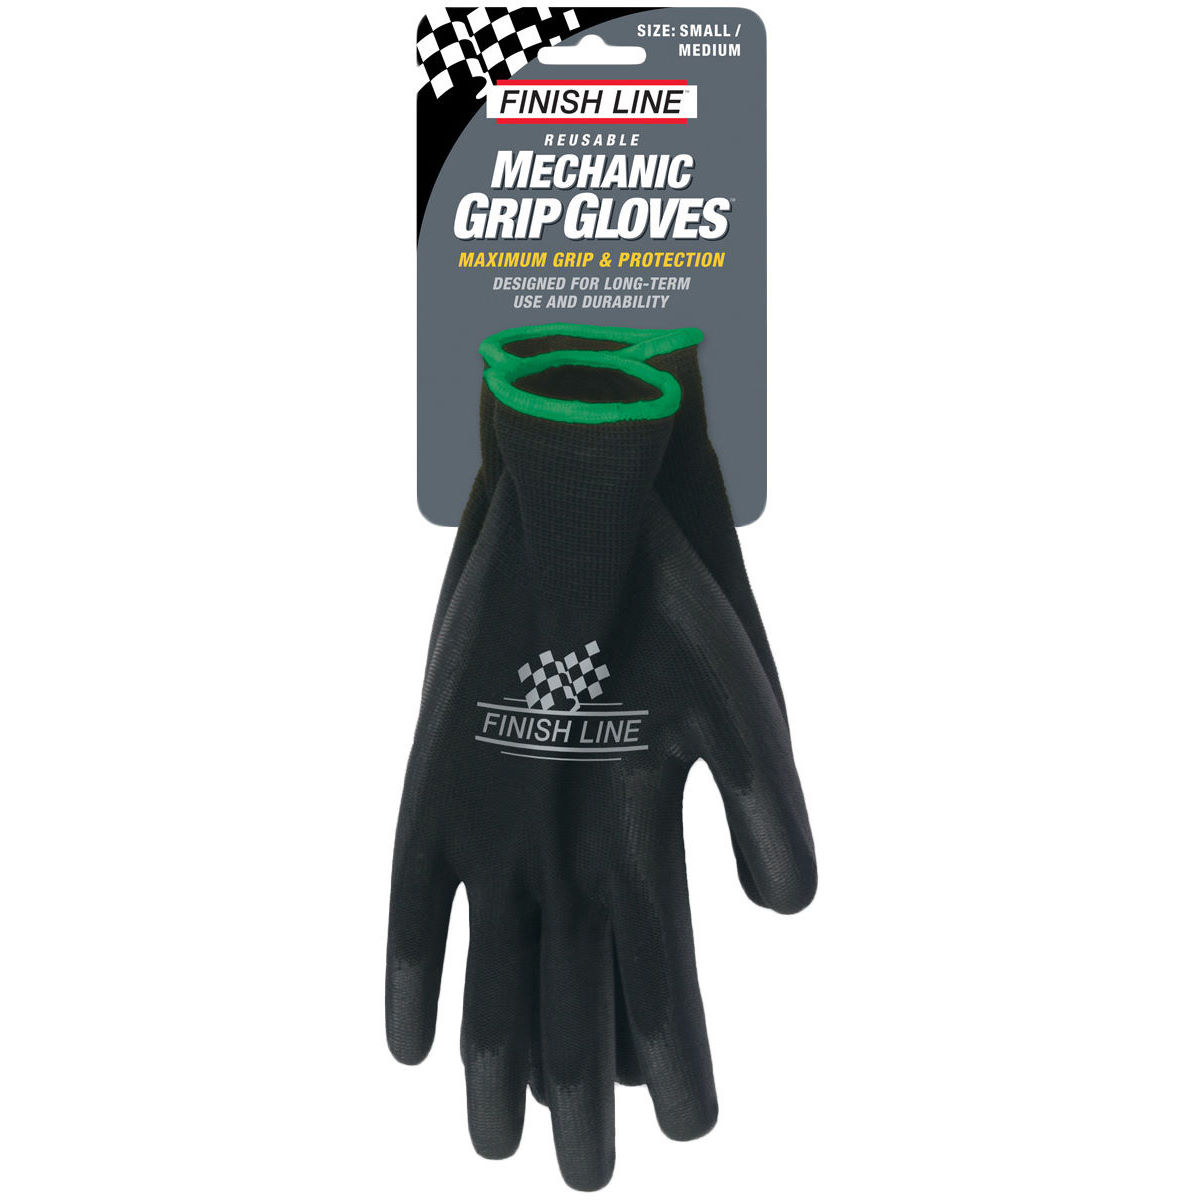 Finish Line Finish Line Mechanic Grip Gloves   Disposable Gloves